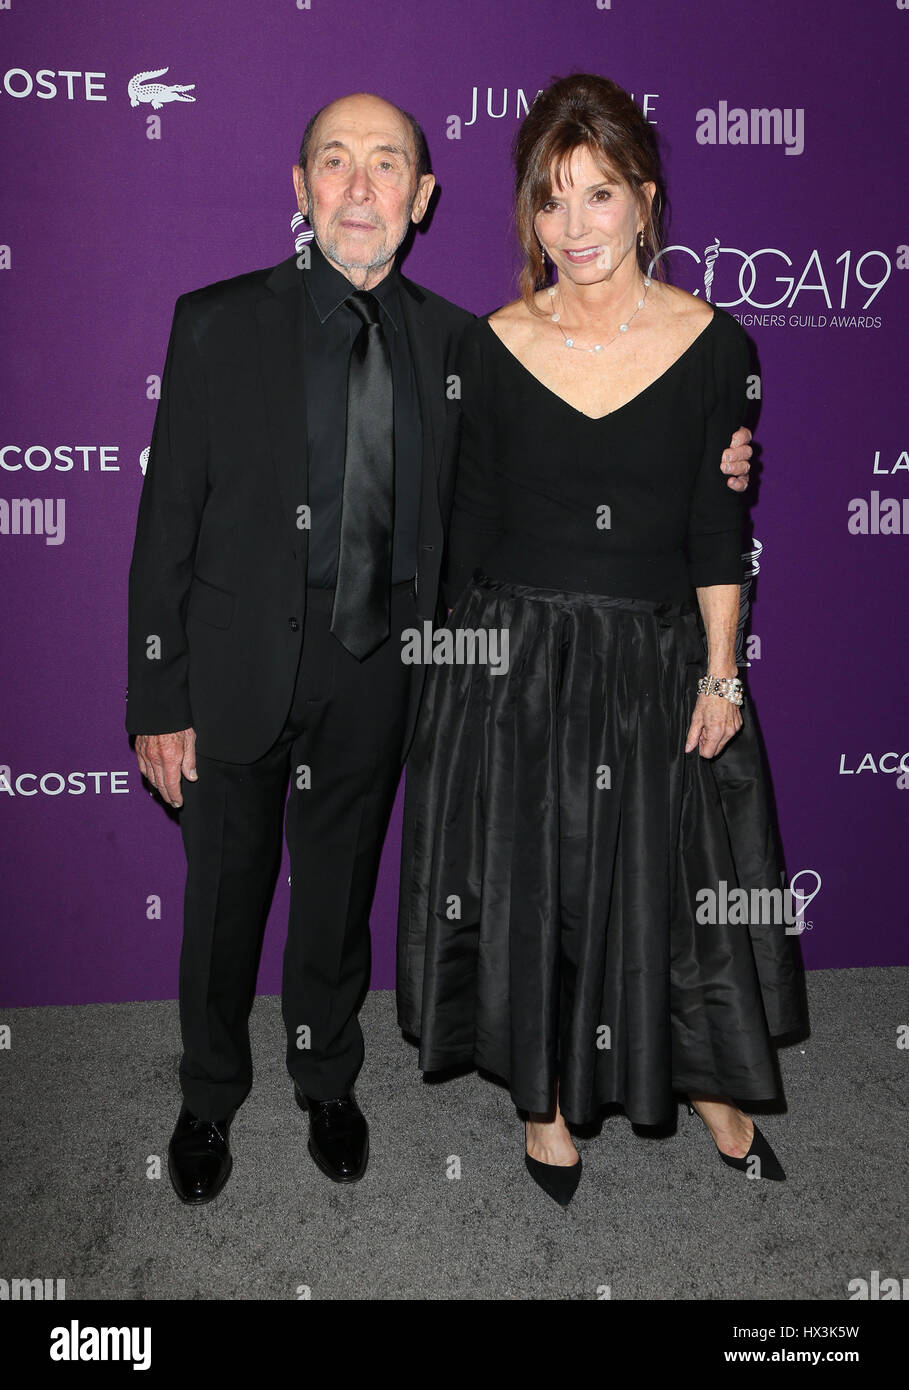 19th CDGA (Costume Designers Guild Awards) held at the Beverly Hilton Hotel - Arrivals  Featuring: Albert Wolsky, - Stock Image